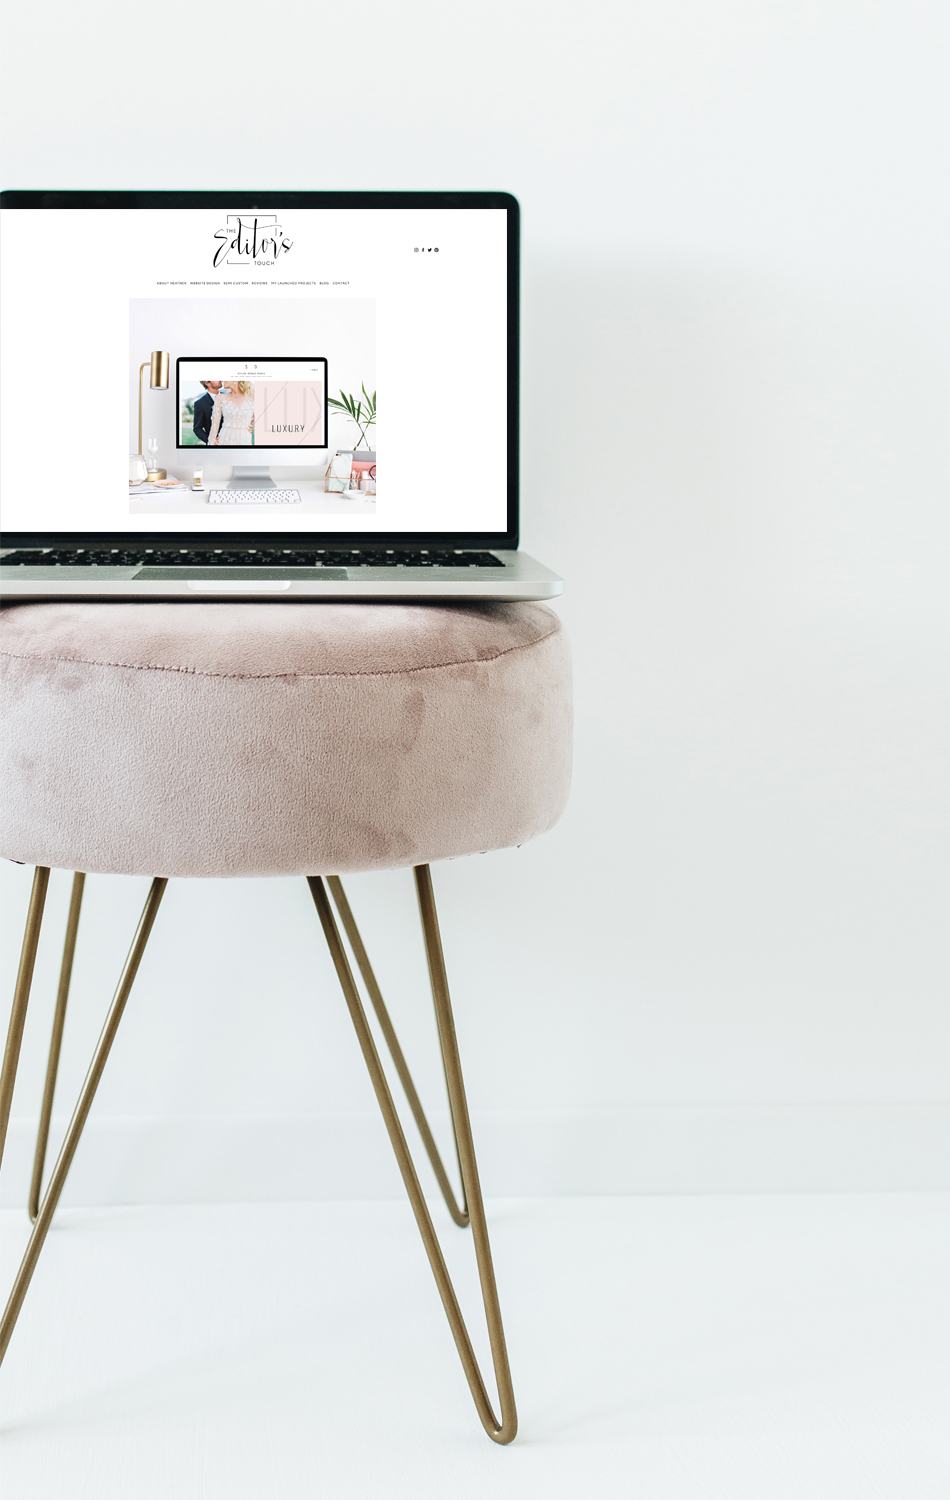 Squarespace Website Designer For Business Owners and Wedding Industry Professionals   The Editor's Touch   Blogger